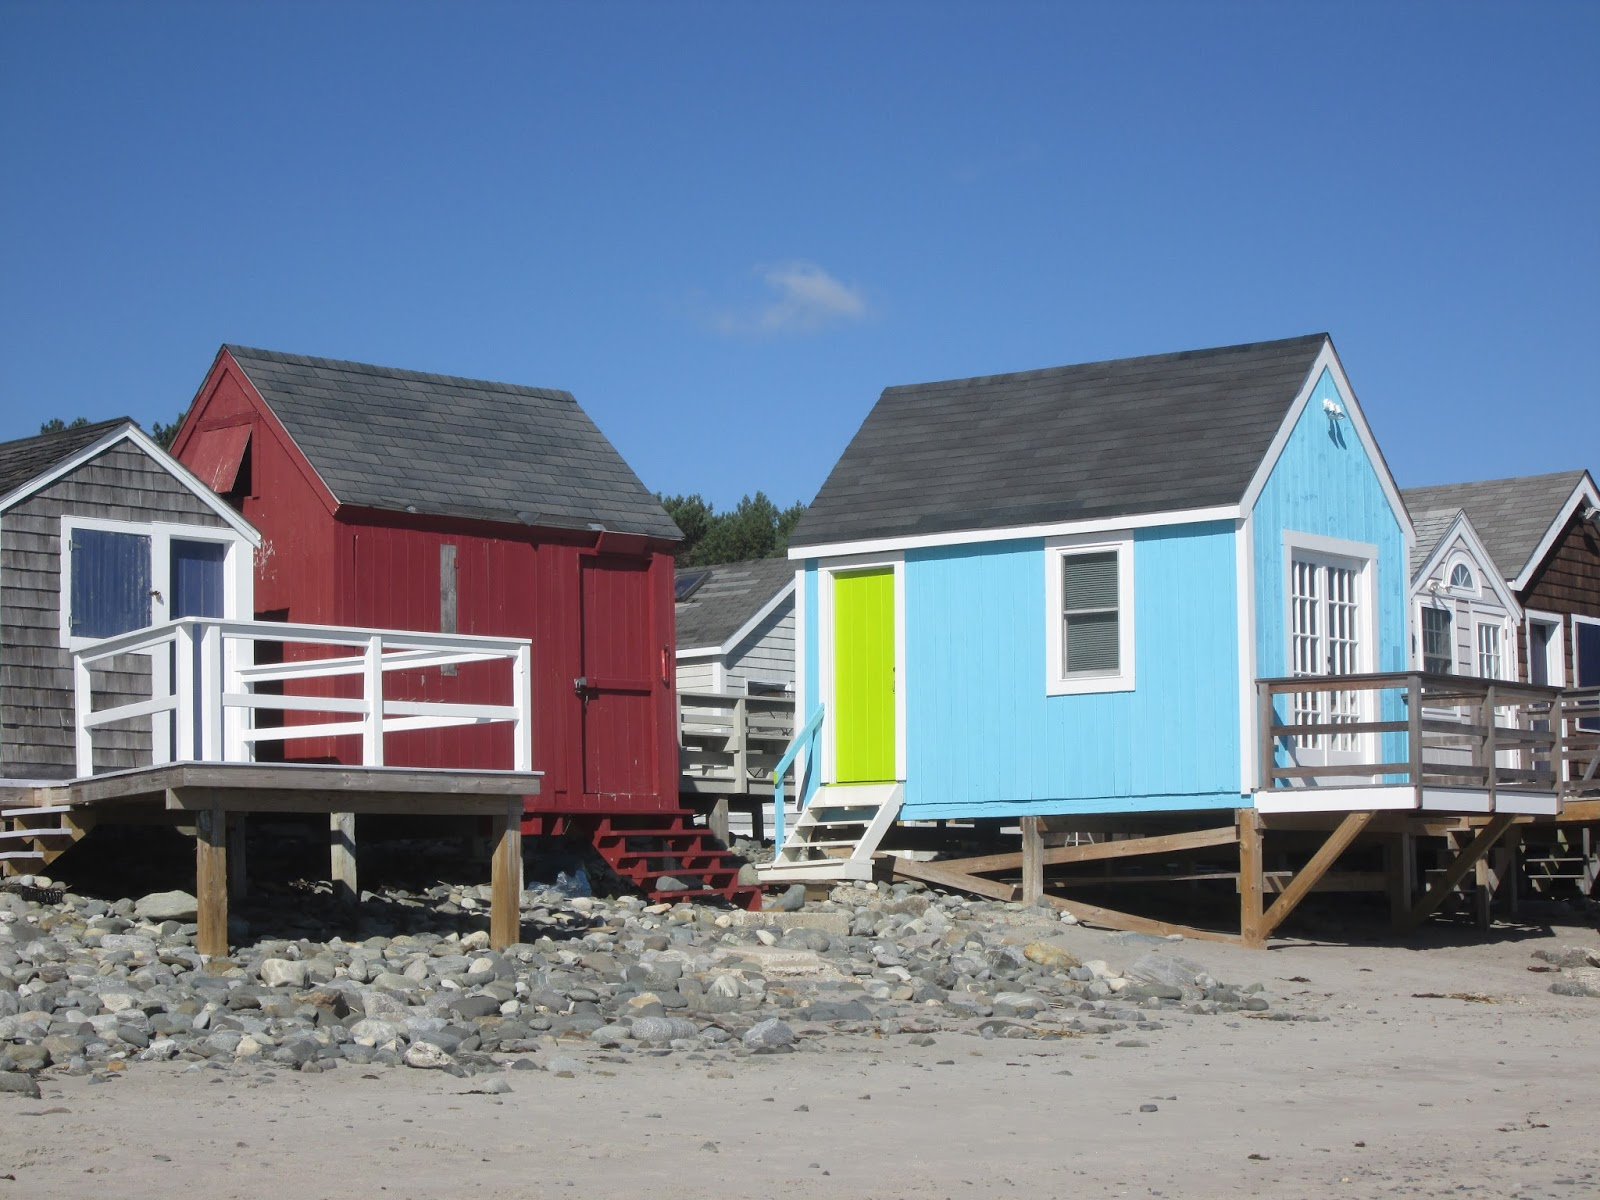 hampton view road beach cottages item larger canada victoria cottage click for on sold manitoba image listing